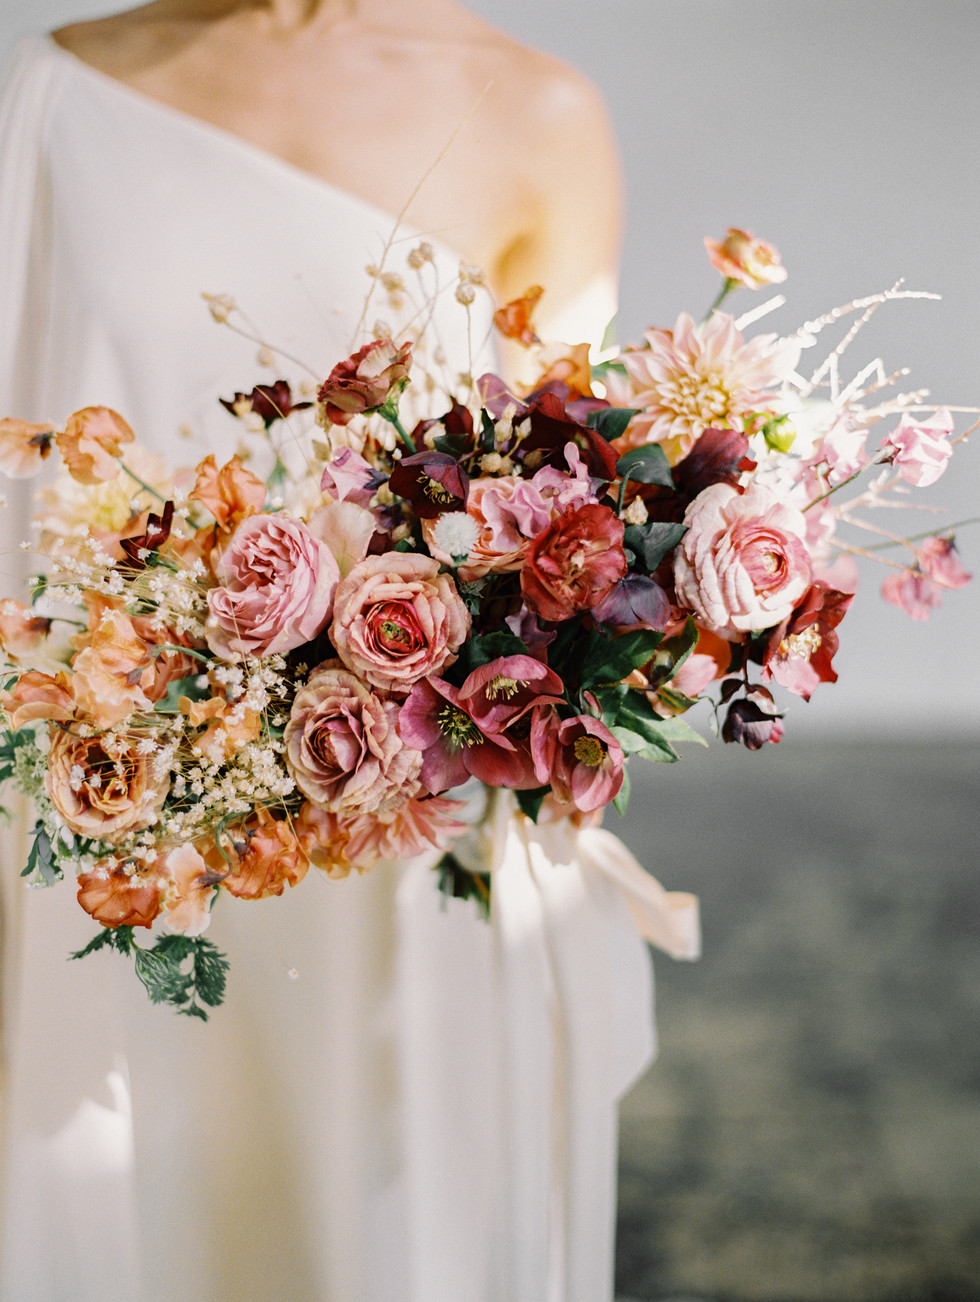 OMBRÉ BRIDAL BOUQUET WITH HELLEBORES, RANUNCULUS, SWEET PEA, AND DRIED FLORAL. PHOTO: GABY JETER